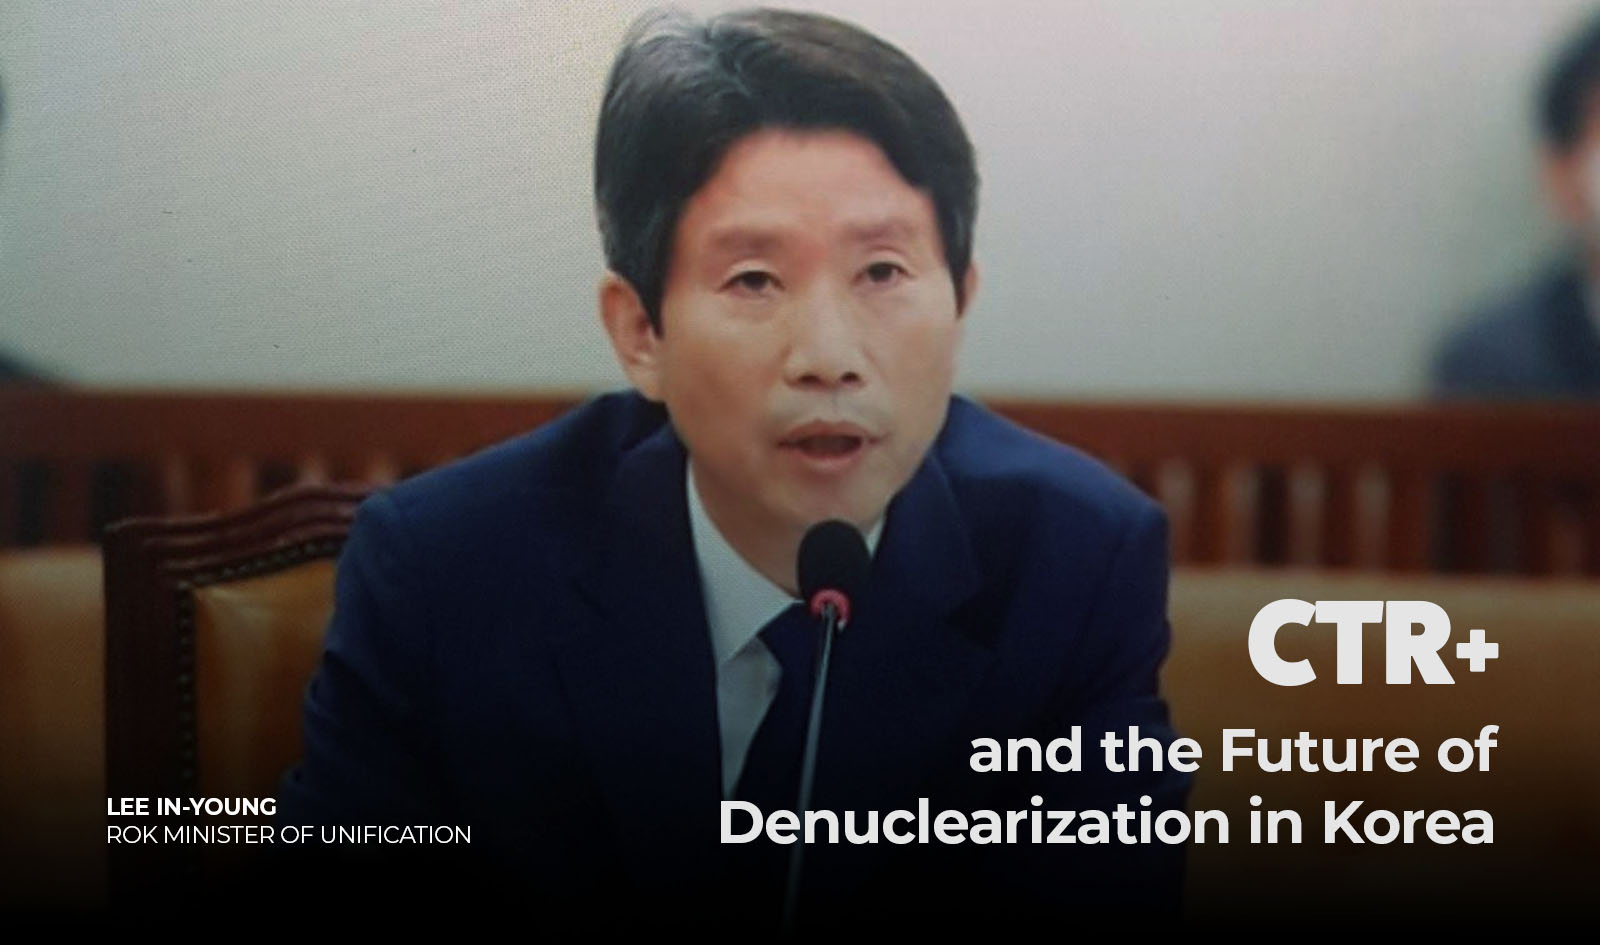 Keynote Speech by ROK Minister of Unification Lee In-Young